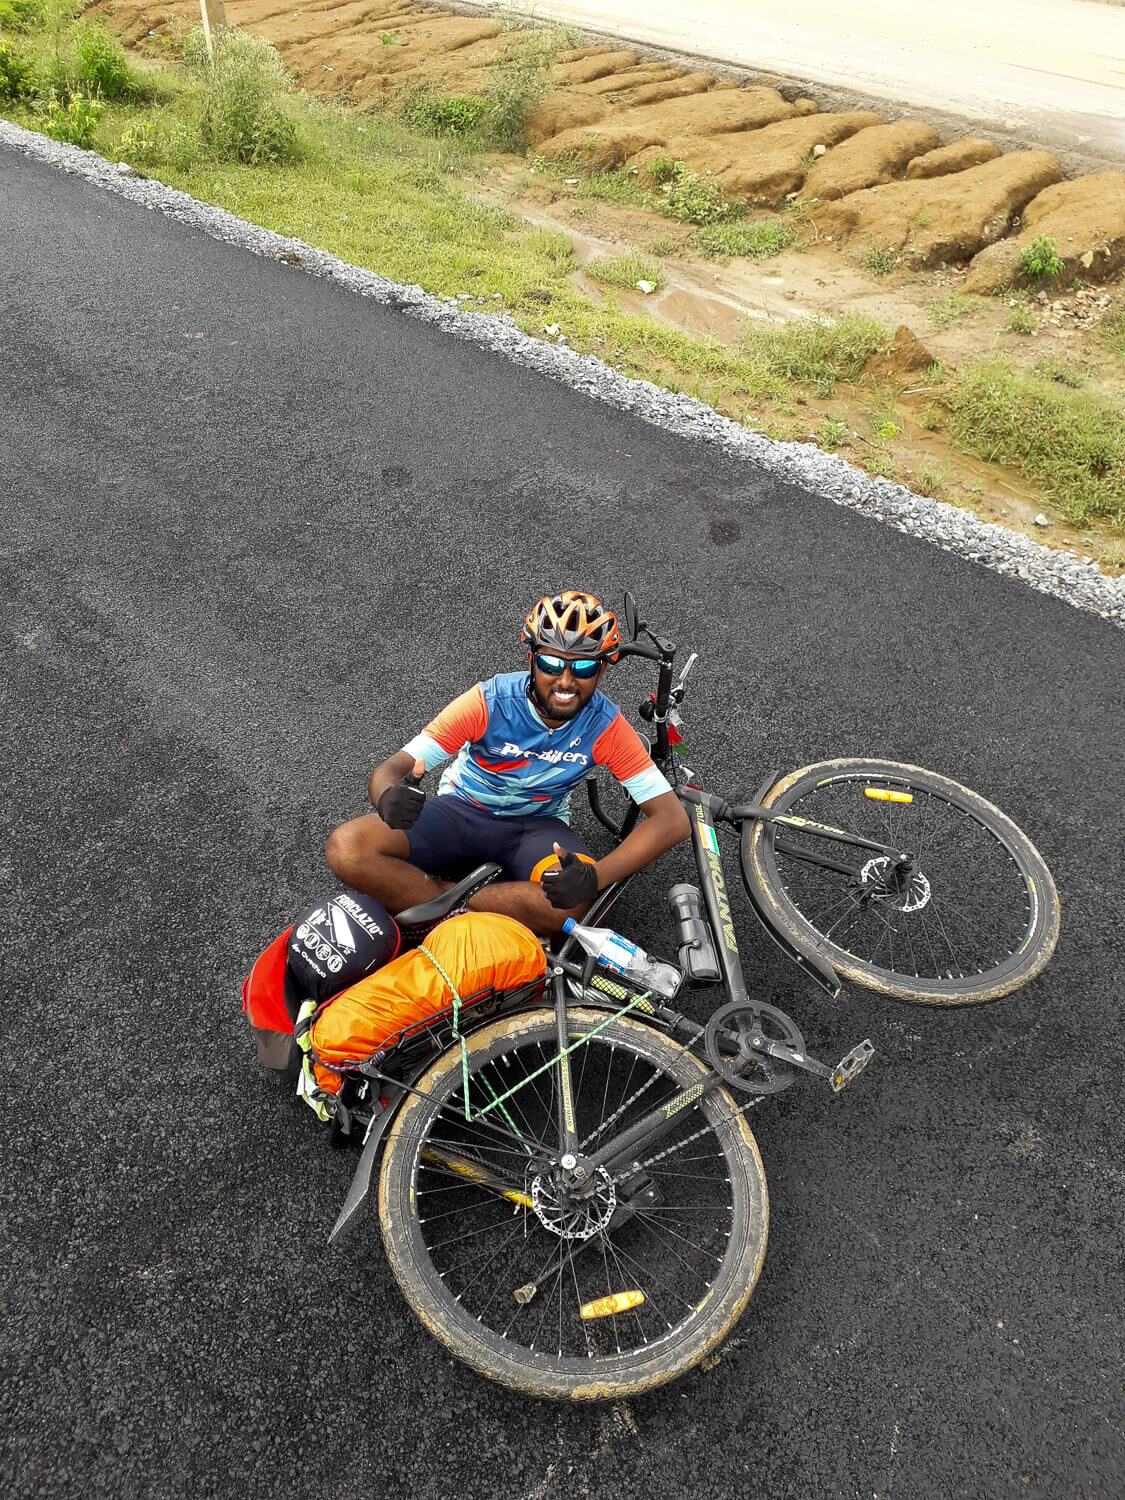 Vignesh Cycling from Jammu to Kanyakumari